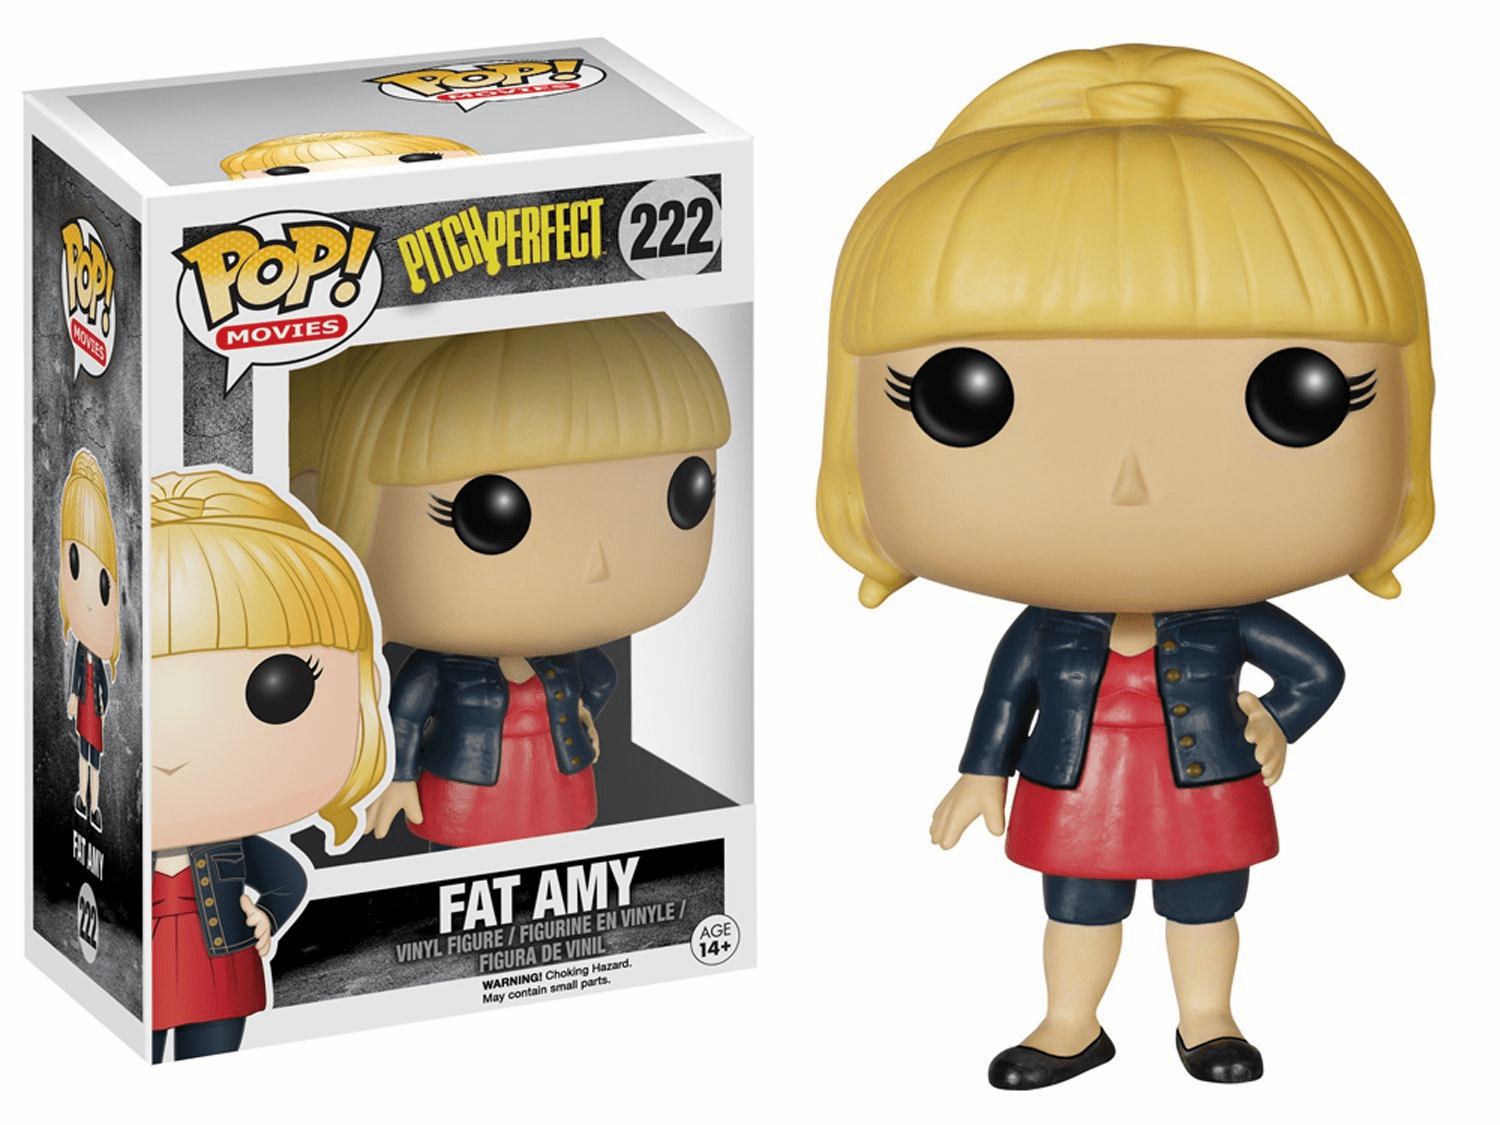 Funko Pop Movies Vinyl Pitch Perfect Fat Amy Figure